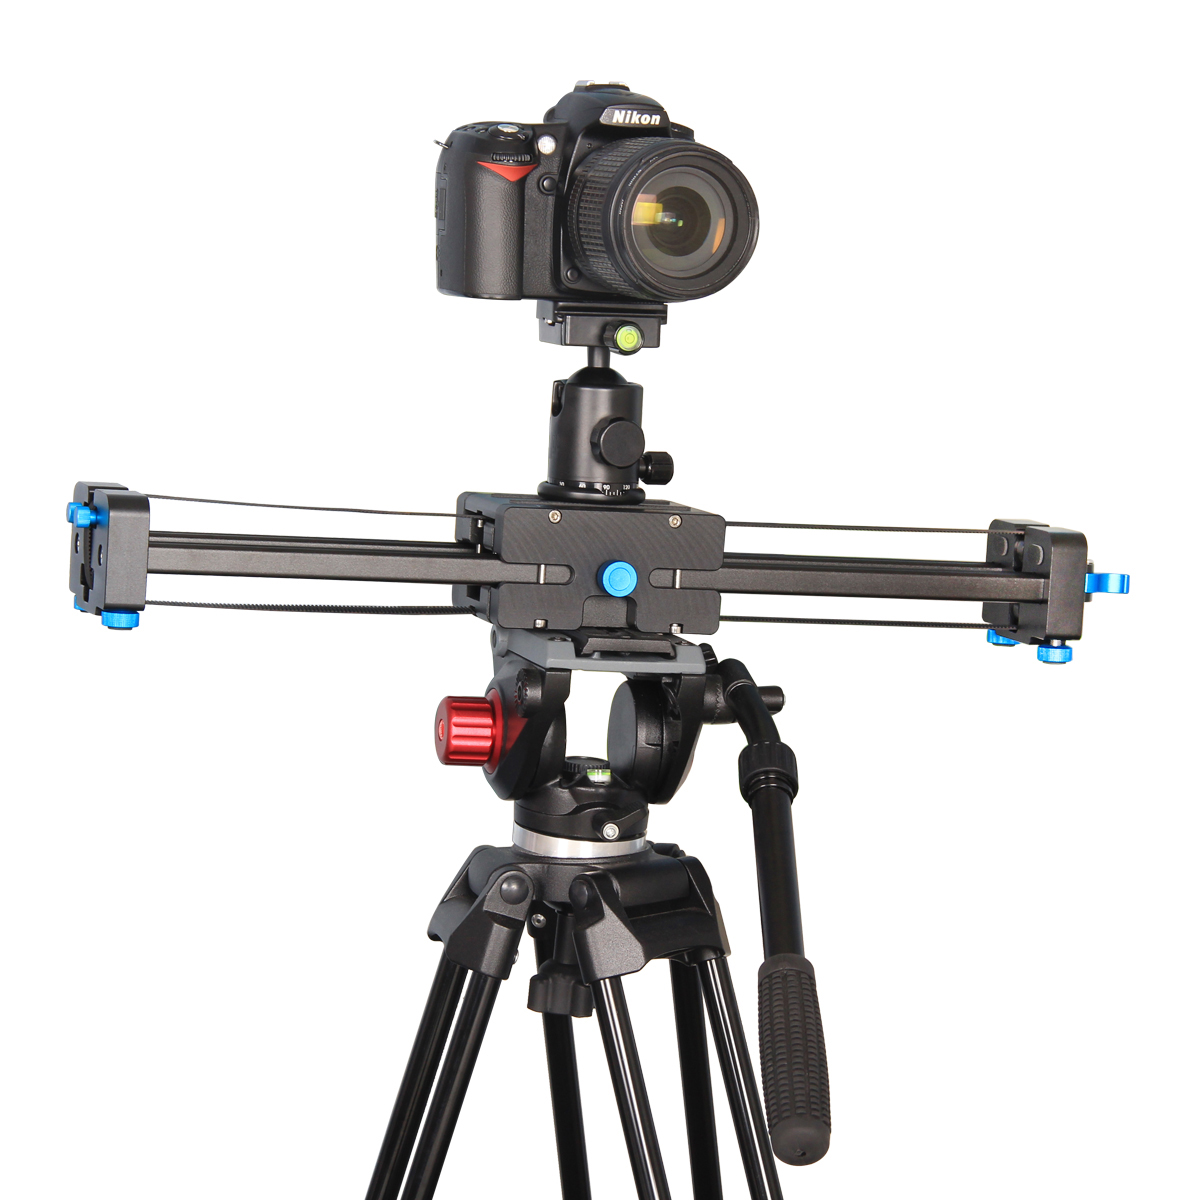 YELANGU 50cm Extendable to 100cm Track Dolly Rail Camera Slider Video Stabilizer For DSLR Camcorders